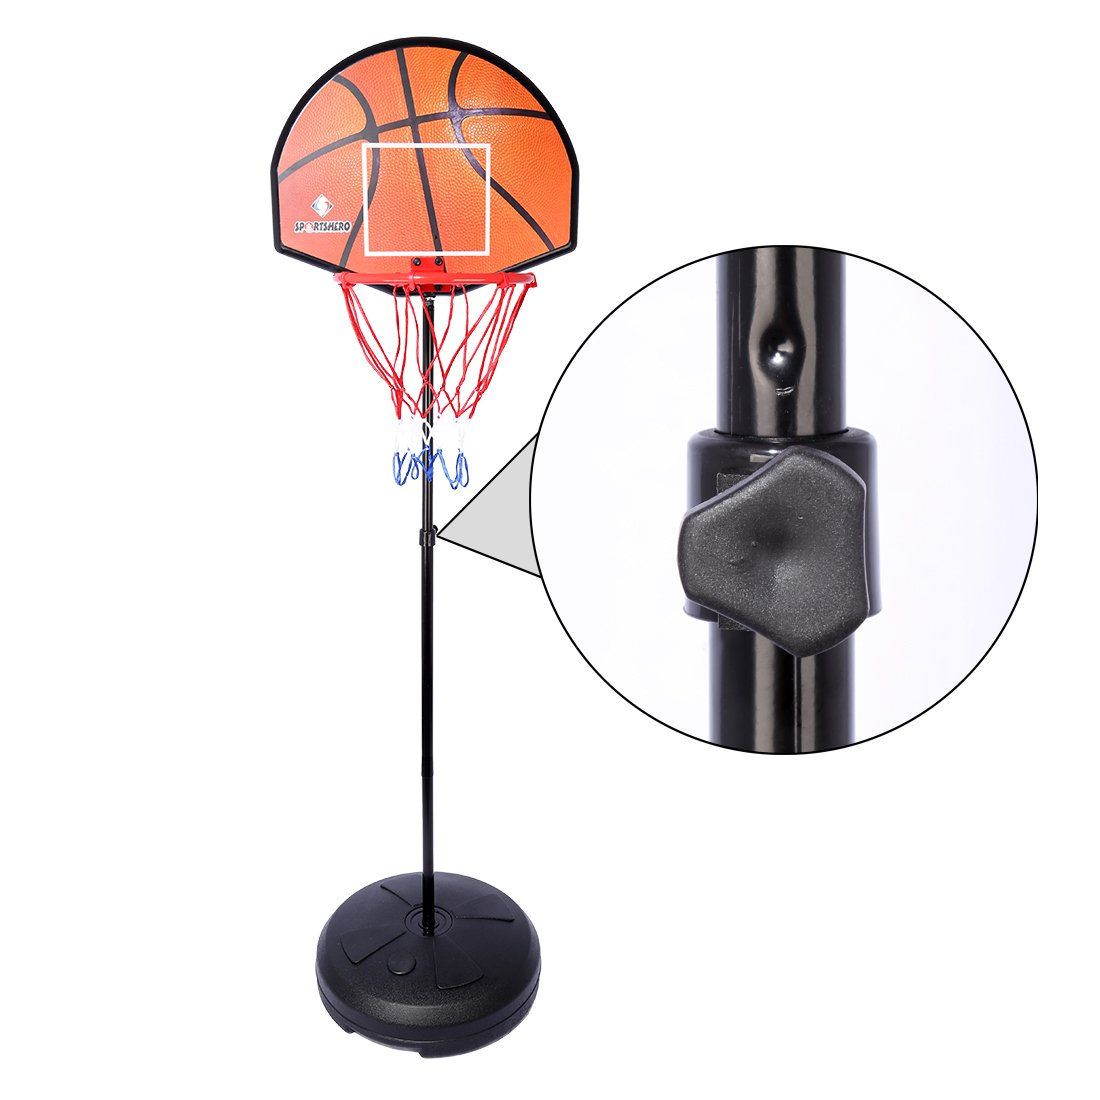 Basketball Stands PINCHUANGHUI 2-in-1 Standing Darts and Basketball Stands Kids Teenagers Goal Hoop Shooting Toy Set by PINCHUANGHUI (Image #2)